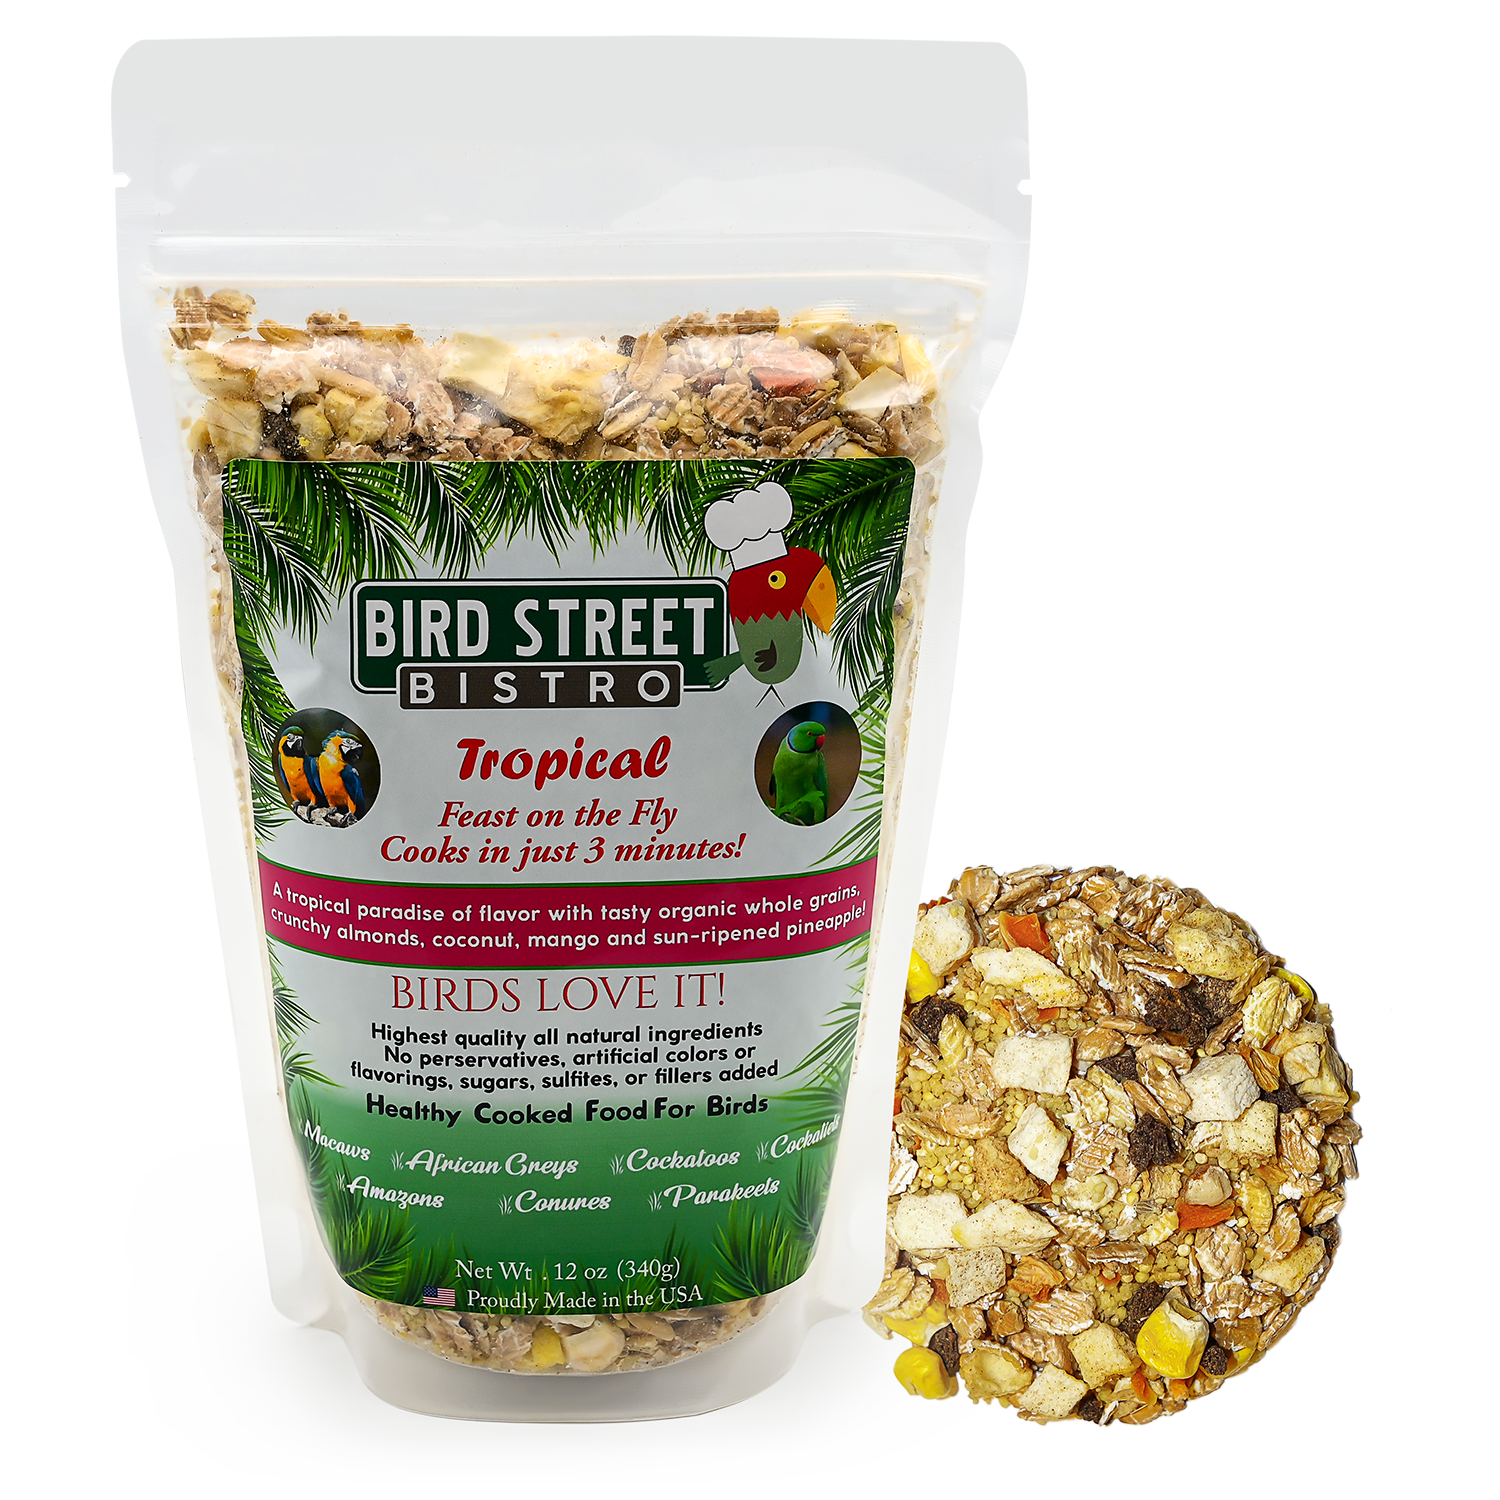 Bird Street Bistro - Tropical Feast on the Fly 12oz